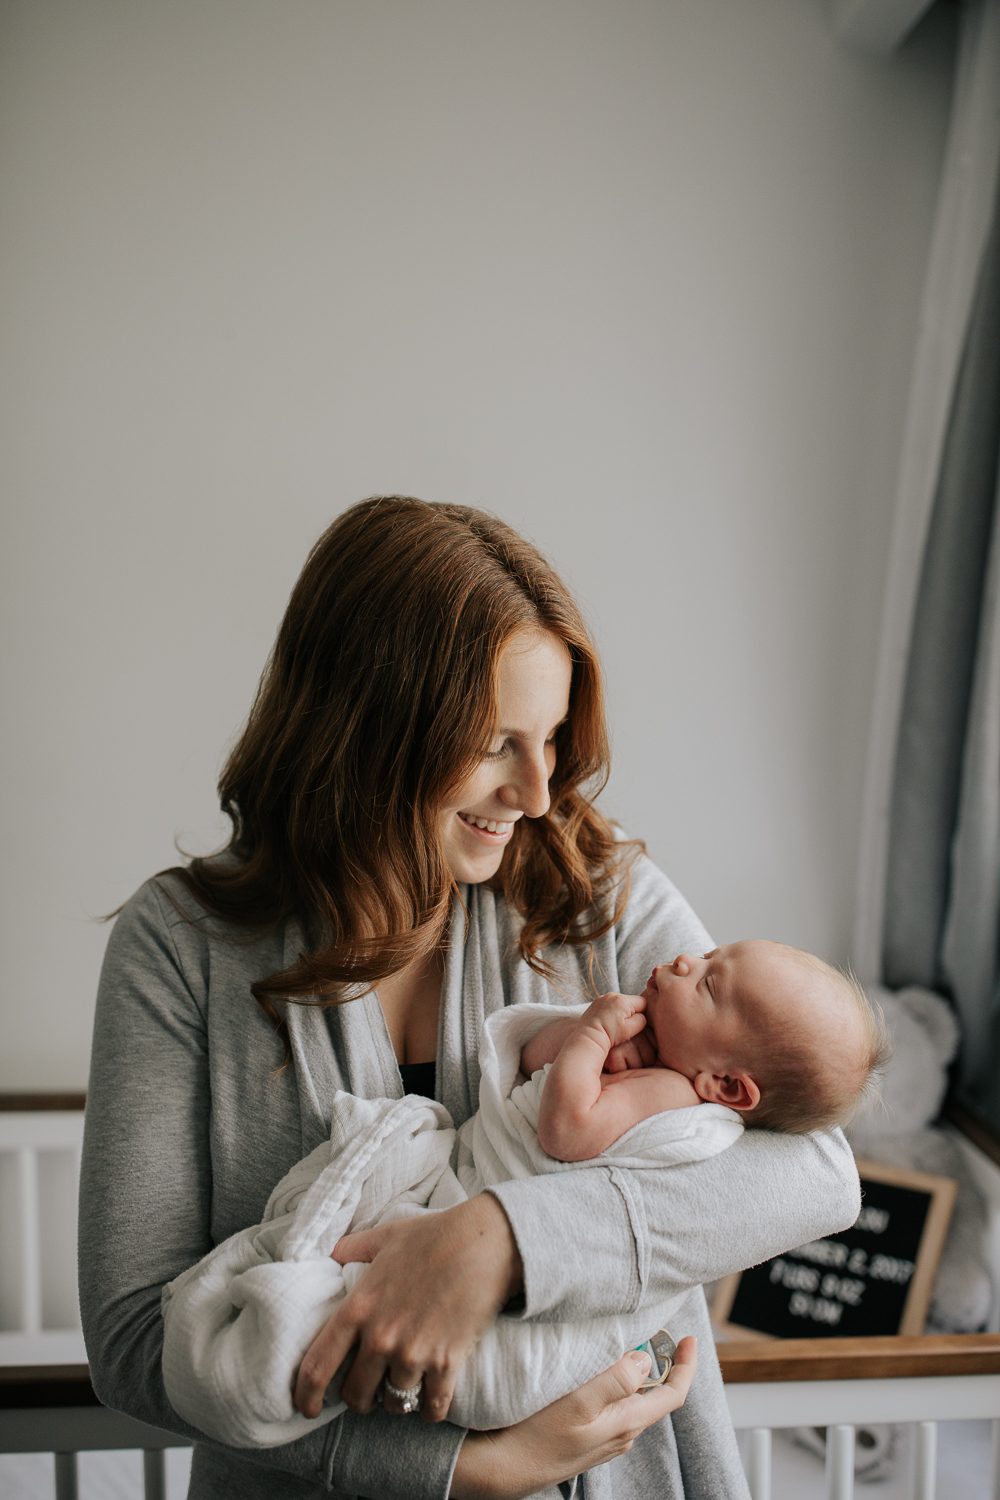 new mom with long red hair standing in neutral nursery holding and snugging 2 week old baby boy wrapped in white swaddle, mother smiling at son who has hands tucked under his chin -Stouffville Lifestyle Photos